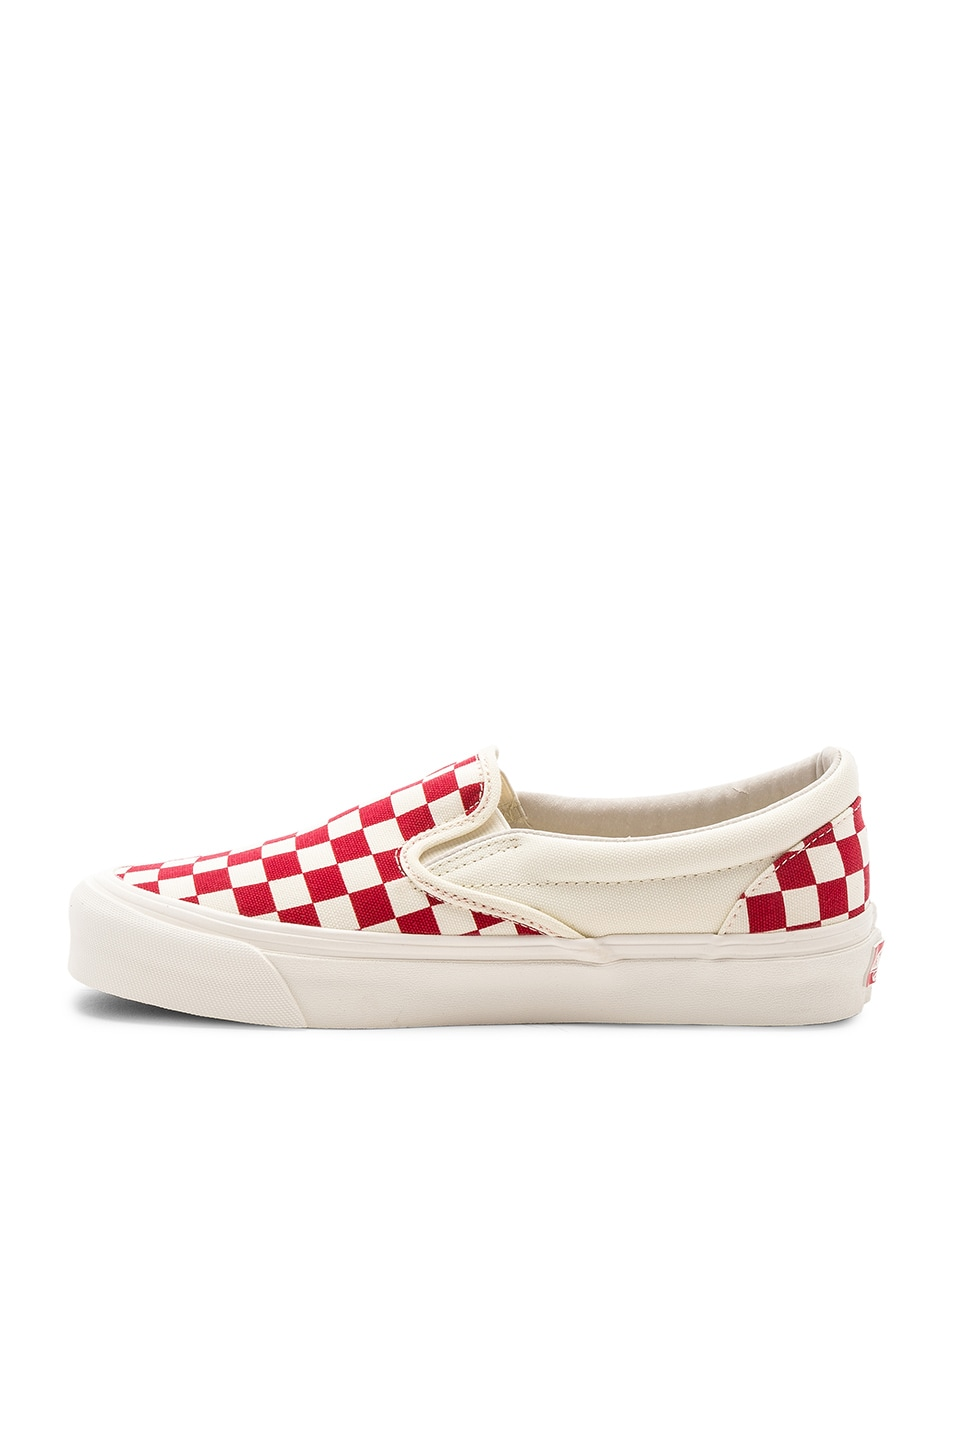 Image 5 of Vans Vault OG Classic Canvas Slip-Ons LX in White & Red